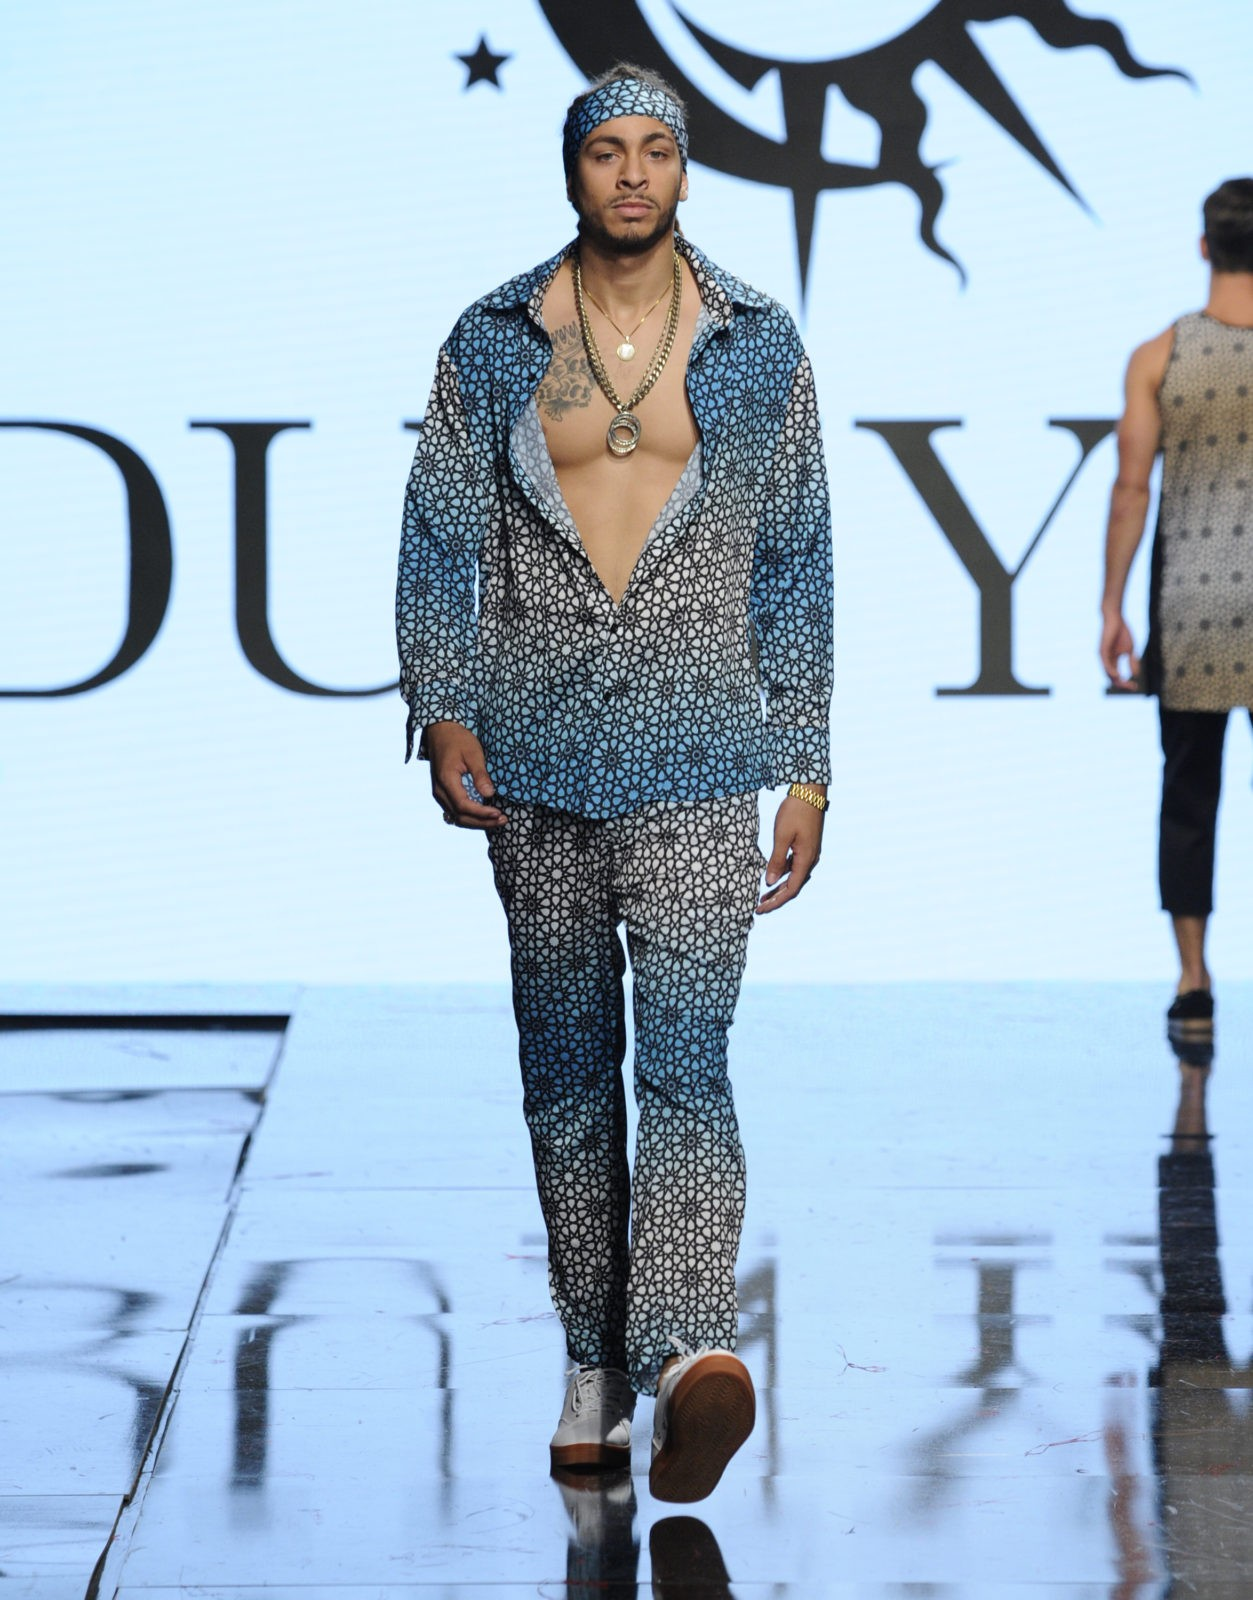 LOS ANGELES, CA - OCTOBER 11:  A model walks the runway wearing Dunyah at Art Hearts Fashion Los Angeles Fashion Week presented by AIDS Healthcare Foundation on October 11, 2016 in Los Angeles, California.  (Photo by Arun Nevader/Getty Images for Art Hearts Fashion)